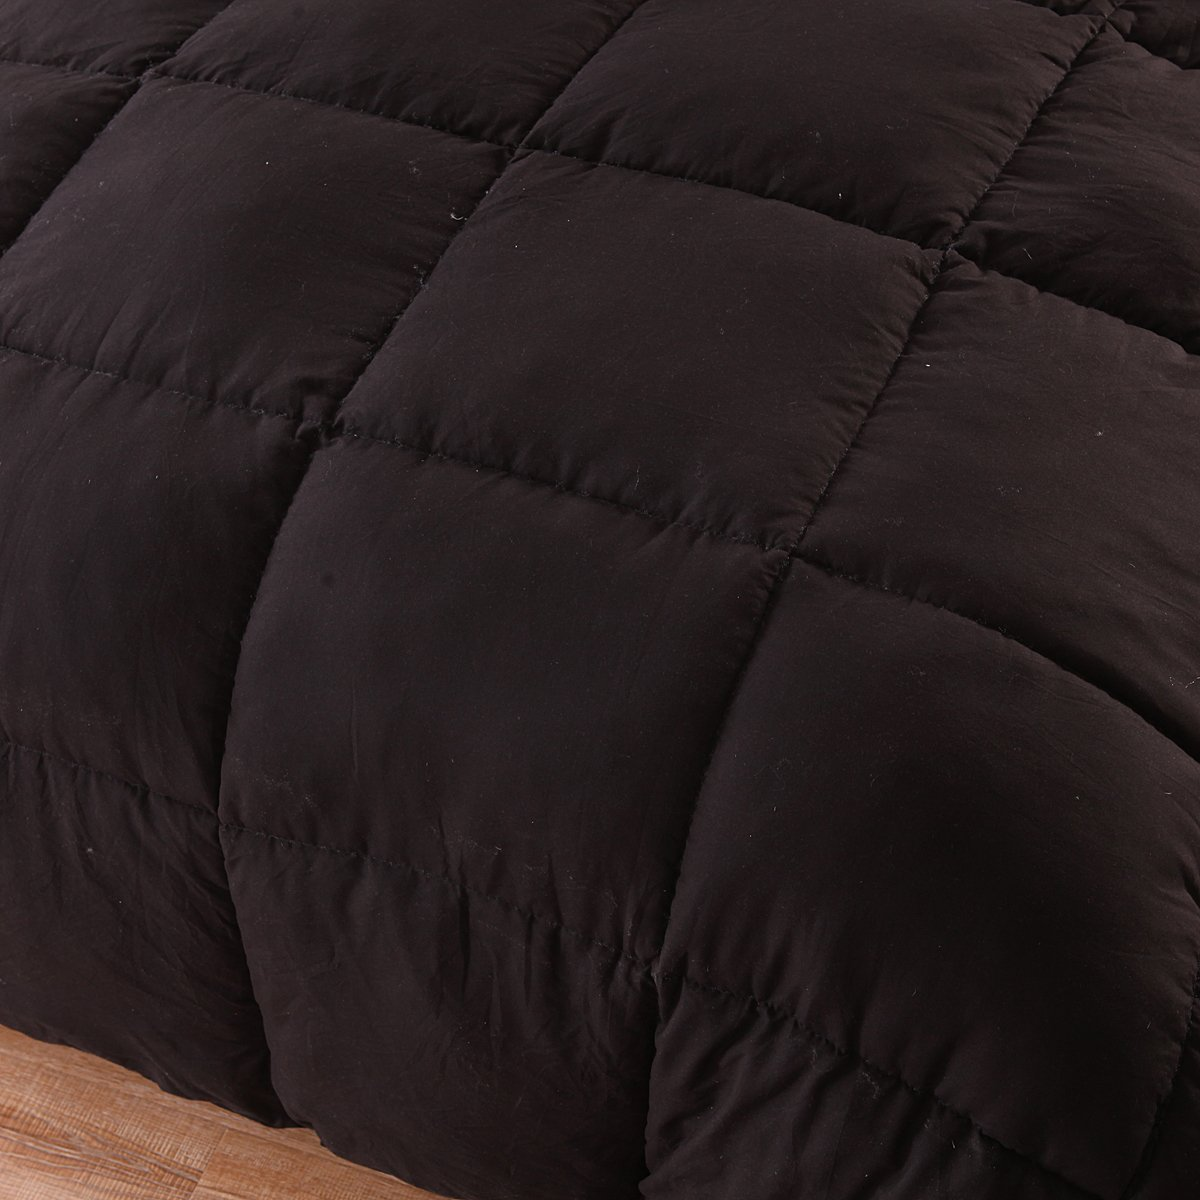 HOMIGOO Solid Down Alternative Comforter Super Soft and Warm Winter Thick Quilt